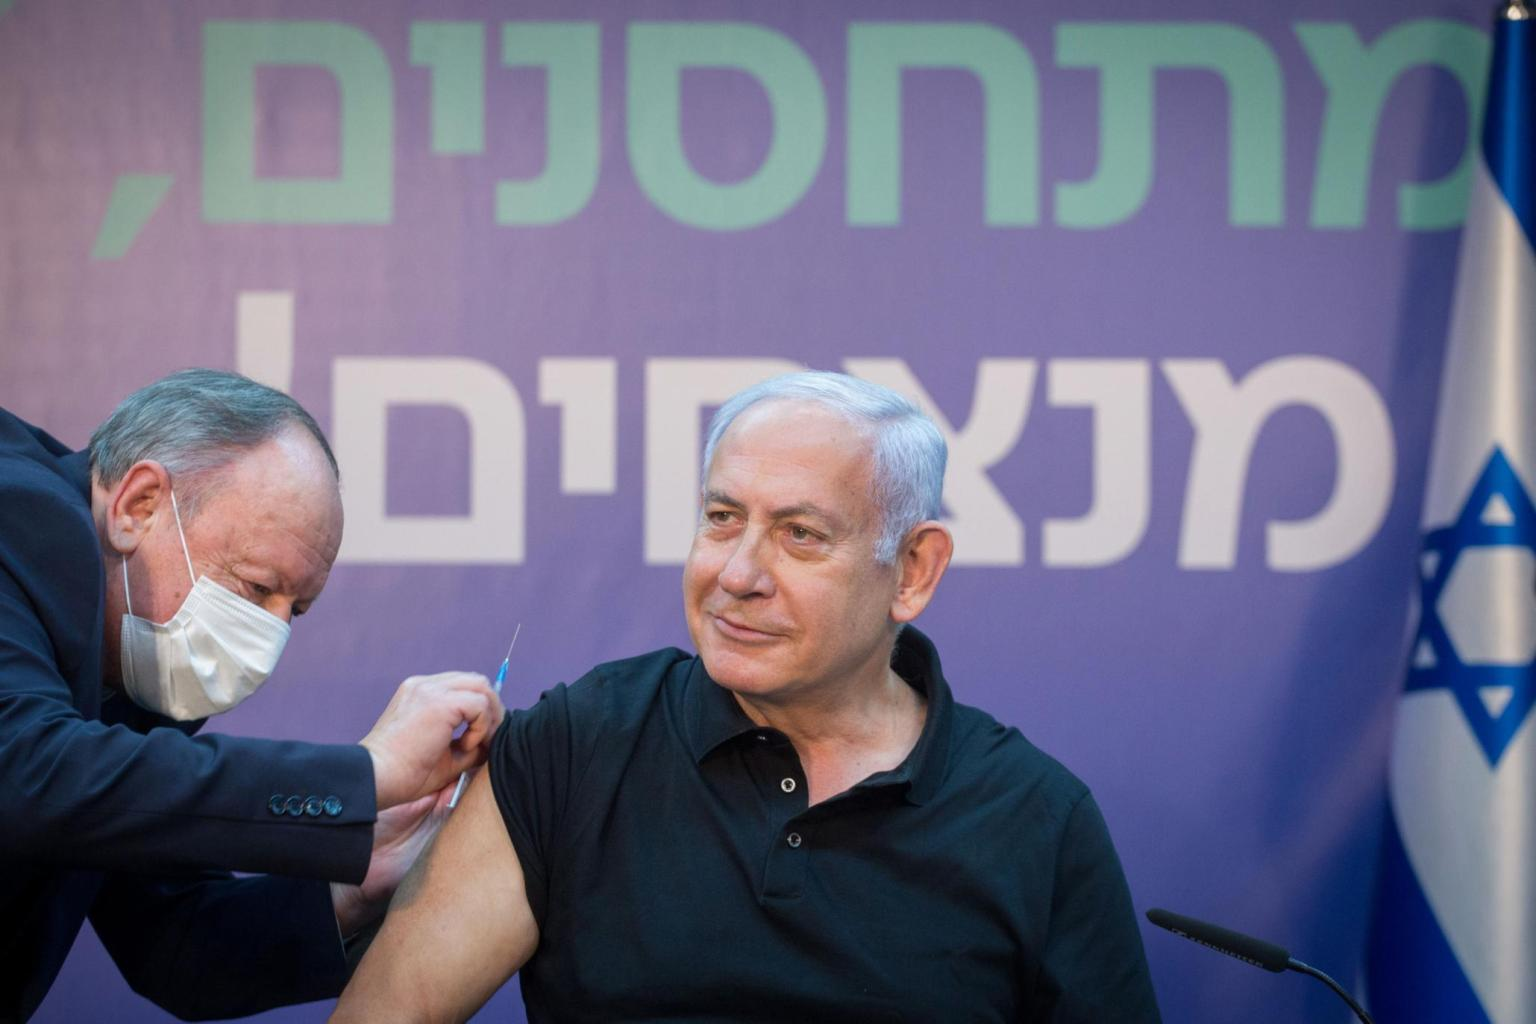 Facebook suspends Israeli Prime Minister for breaking privacy rules